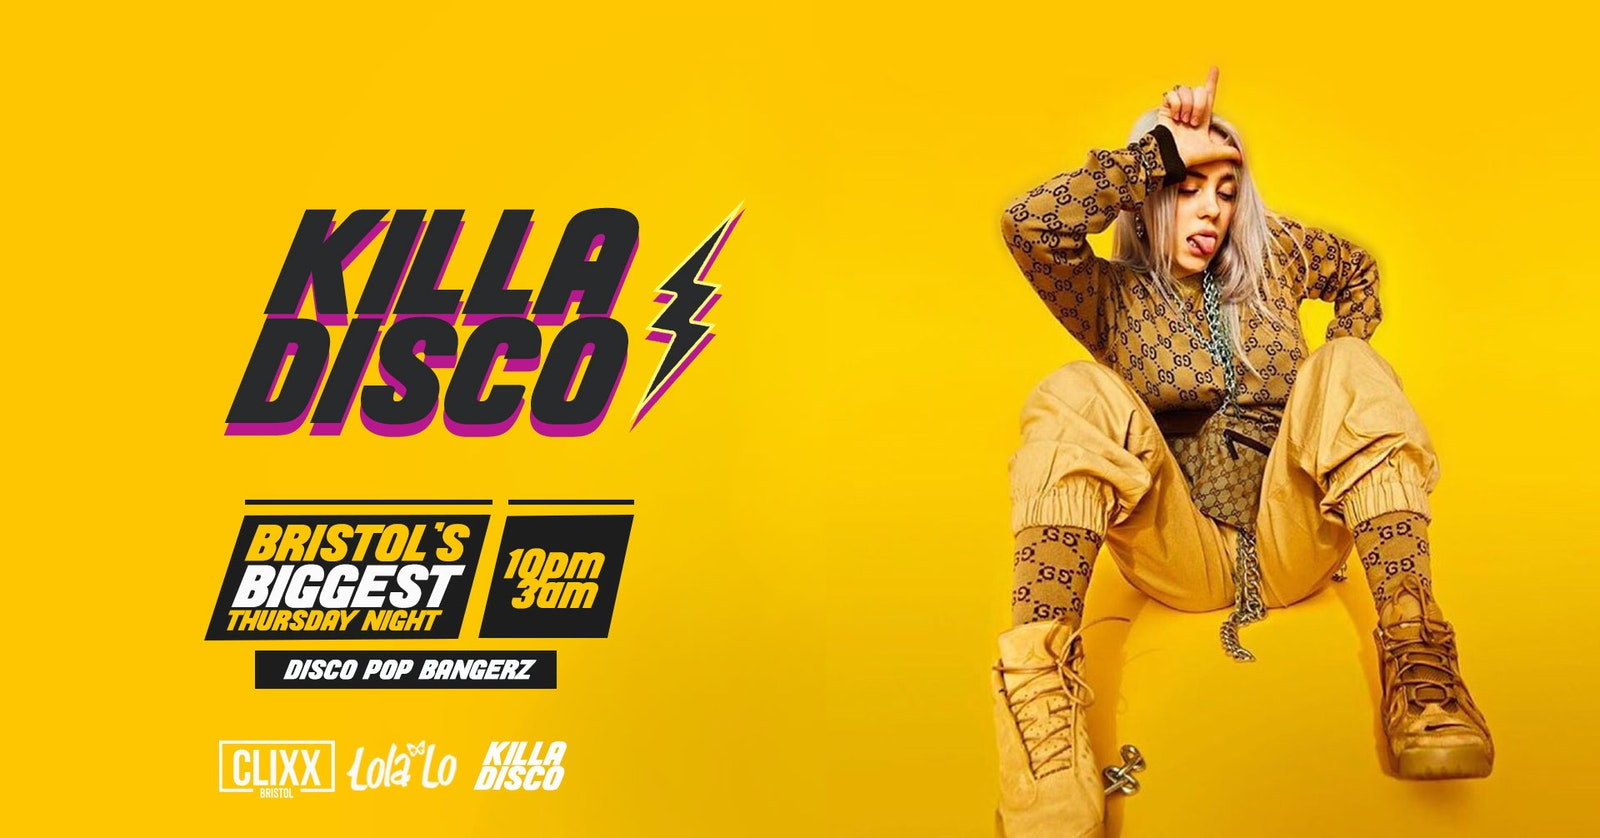 KILLA DISCO  | Moving In Disco  / SOLD OUT – 150 spaces on the door